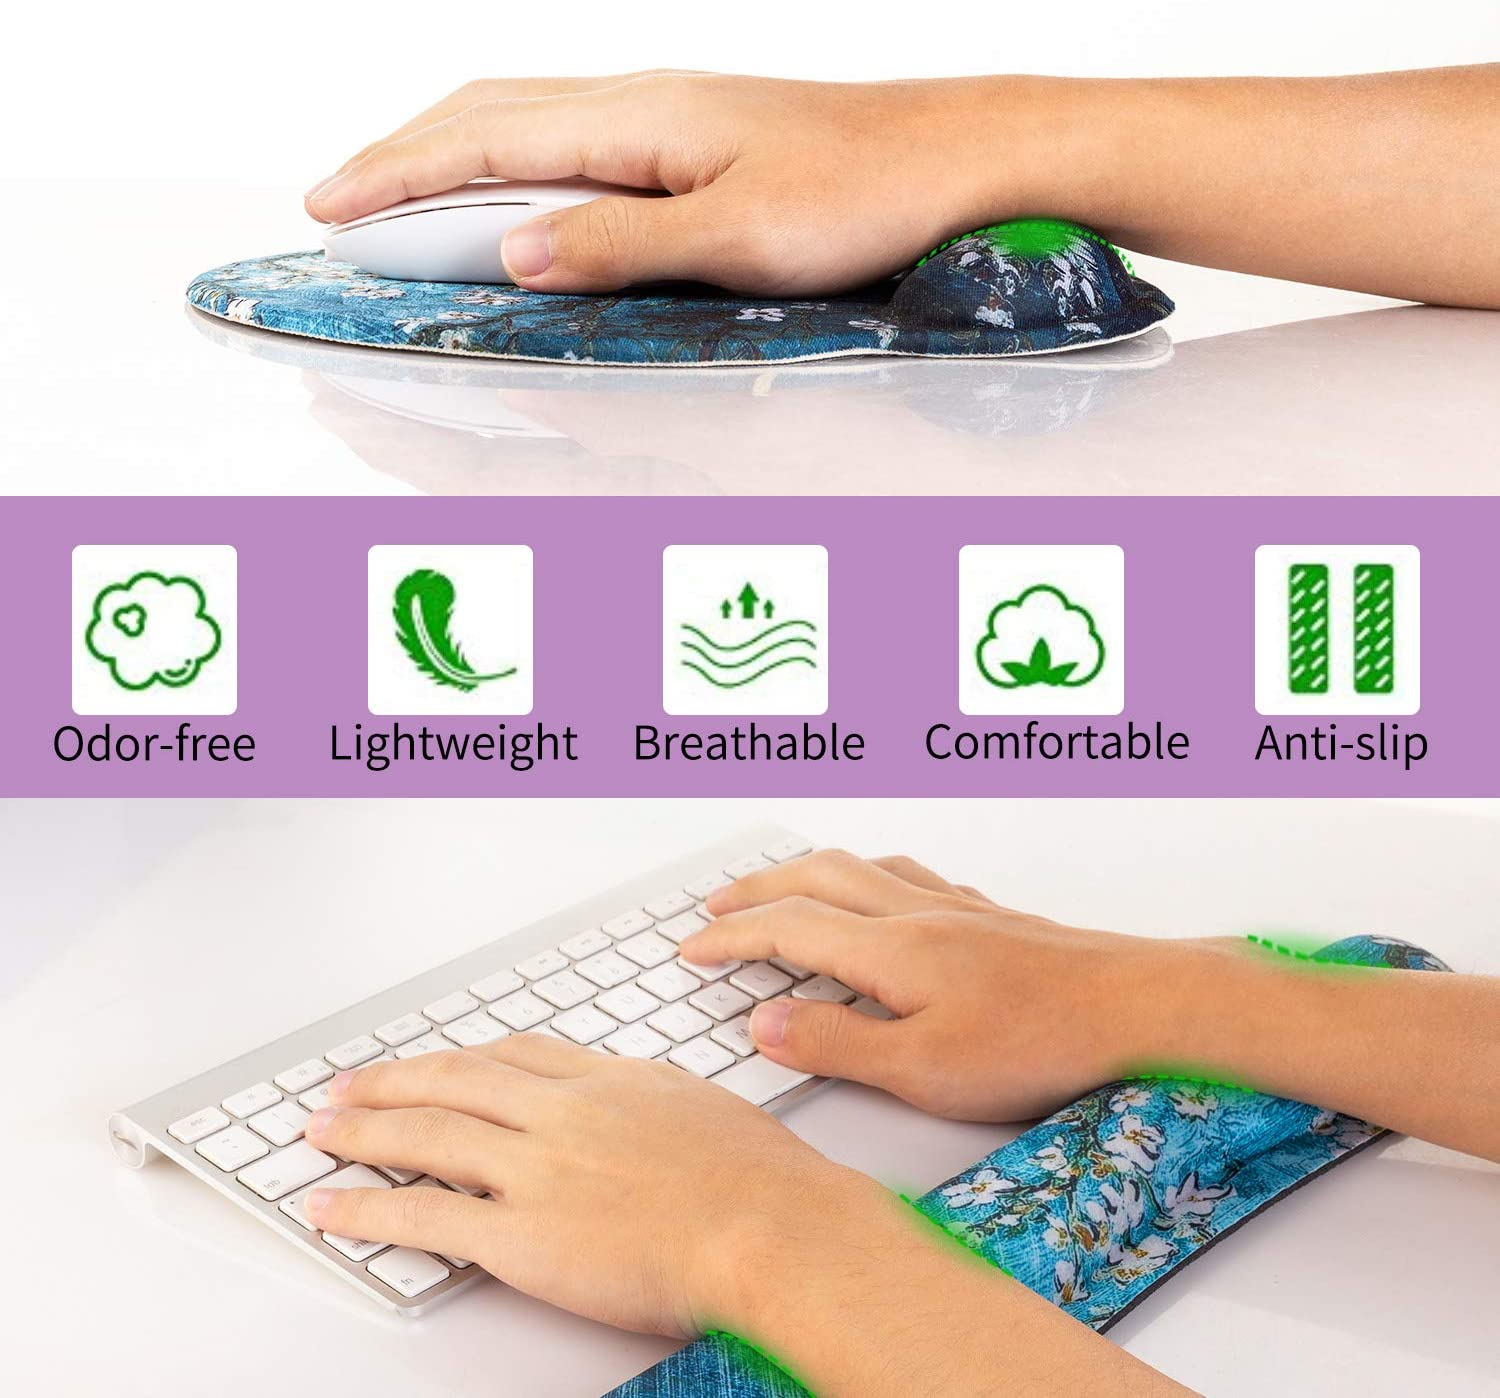 AORTDES Memory Foam Set Ergonomic Keyboard Mouse Pad Wrist Support Comfortable /& Lightweight for Easy Typing /& Pain Relief Durable Keyboard Wrist Rest for Computer//Laptop//Gaming//Office World Map